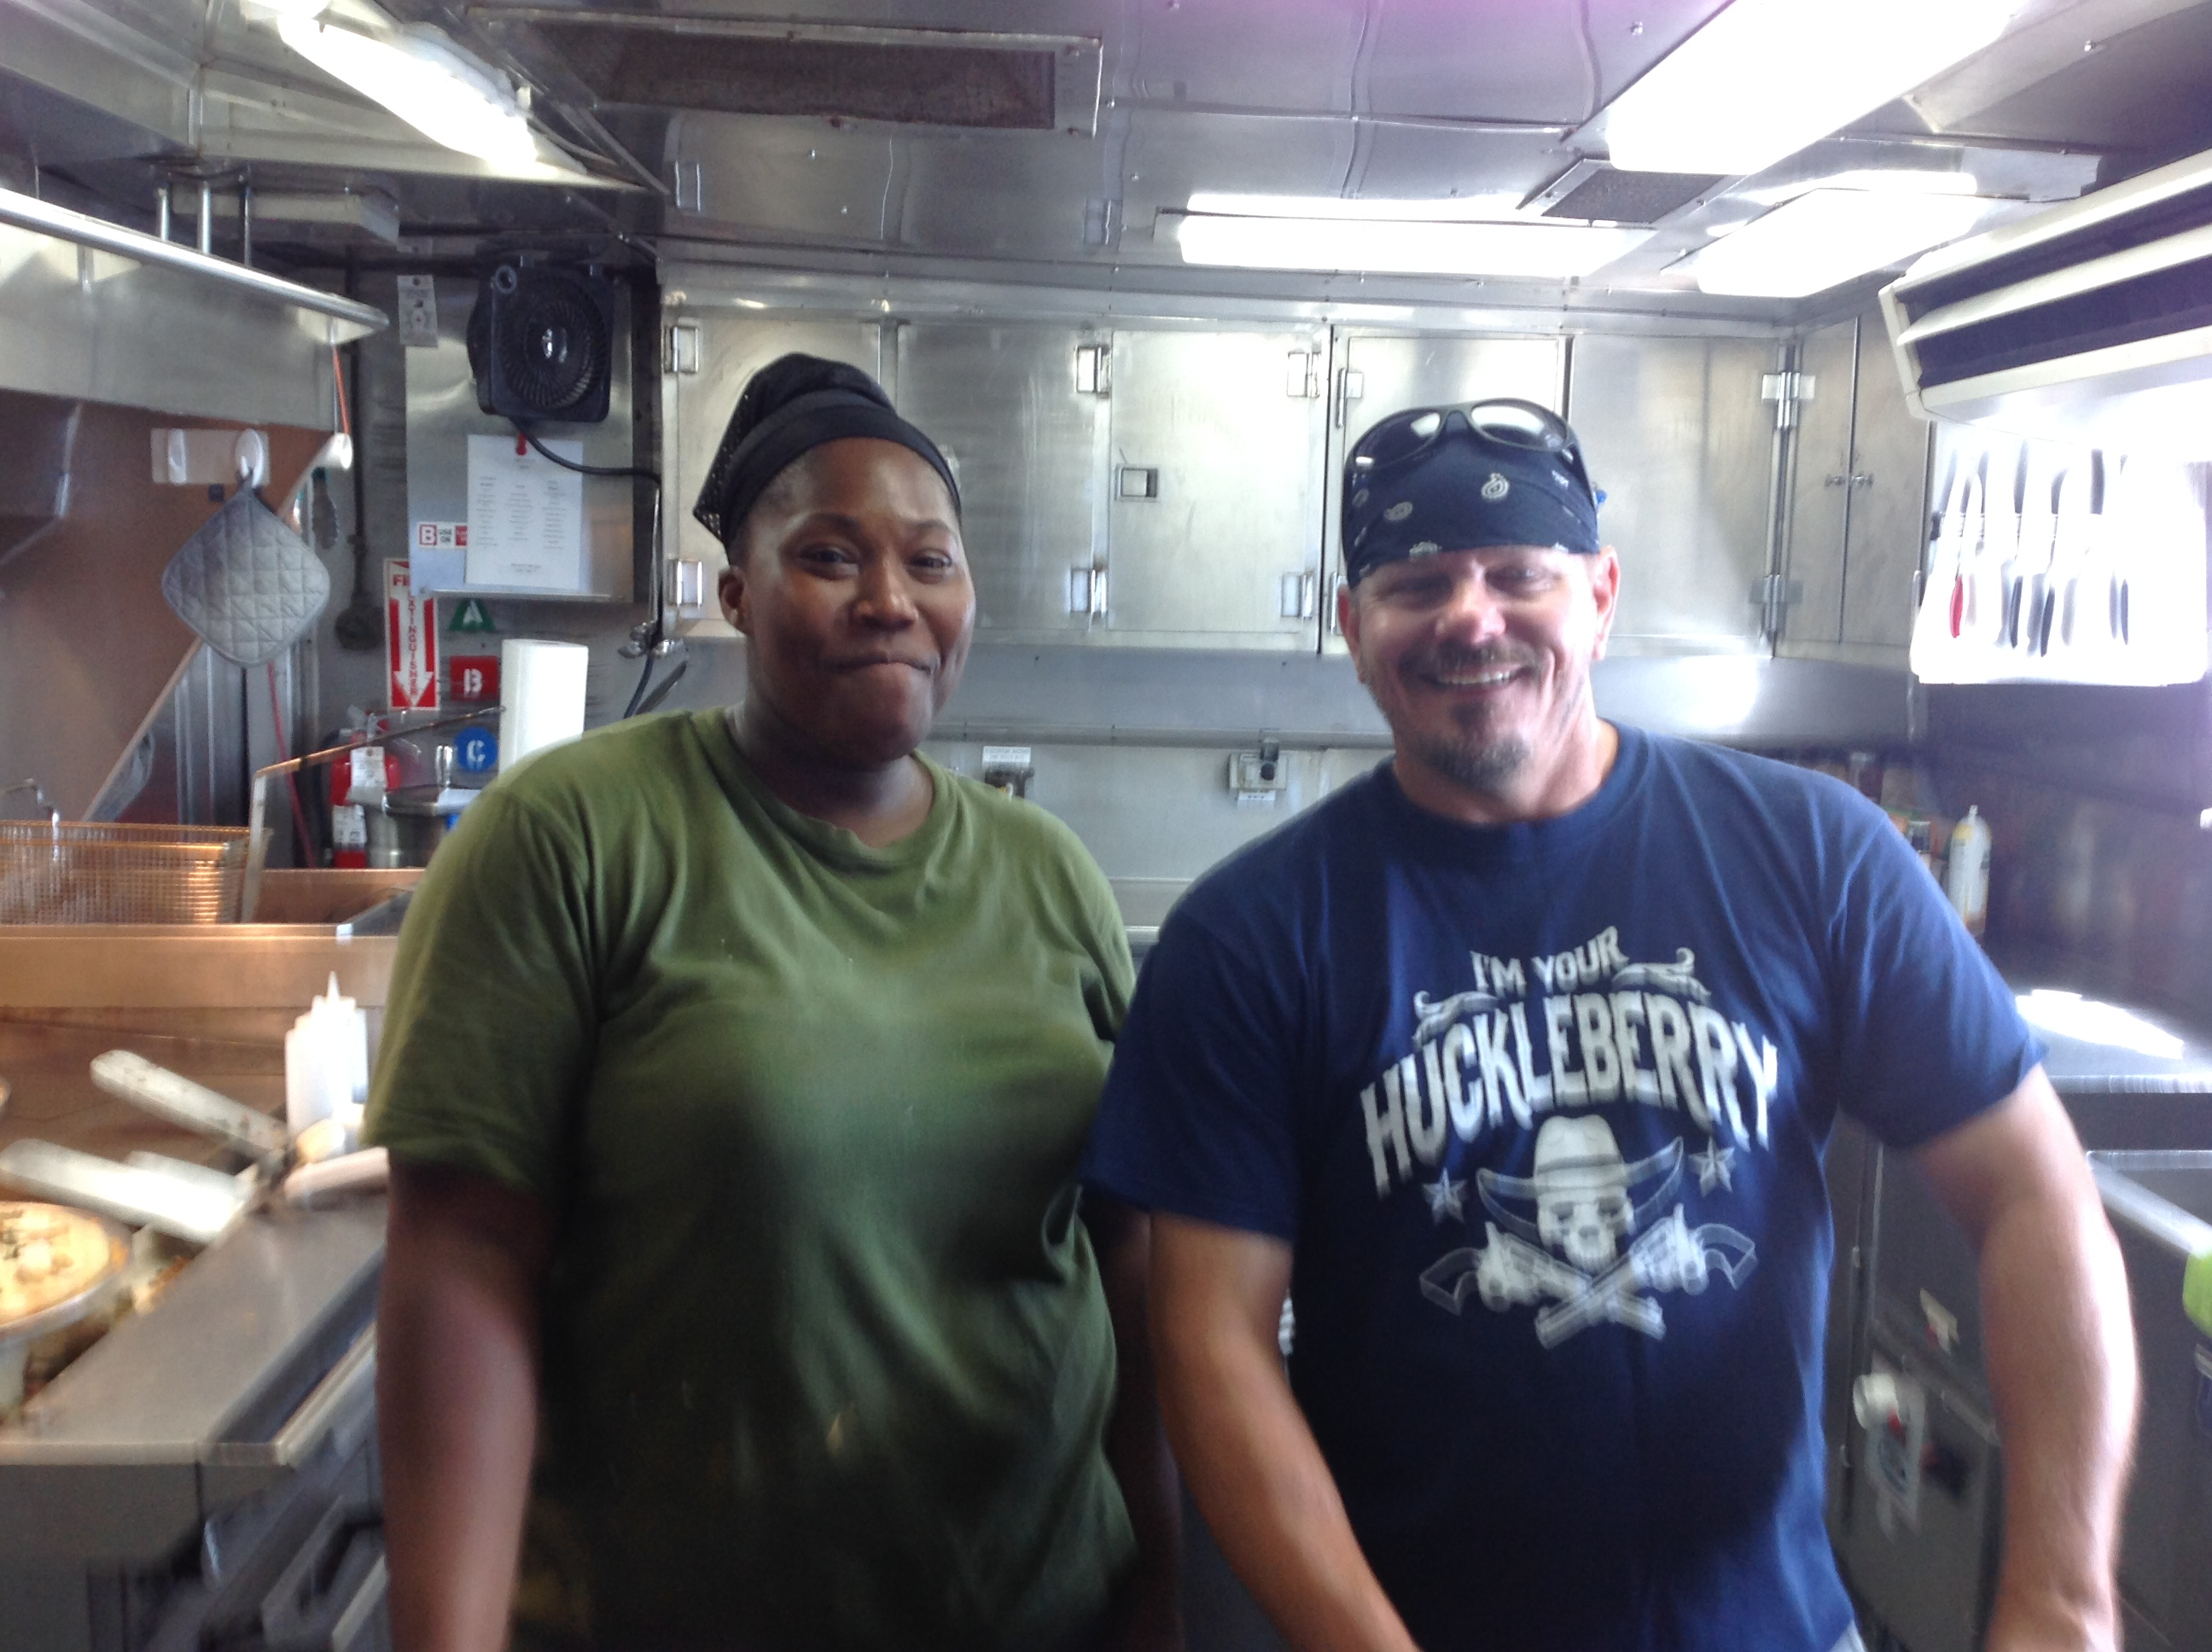 valerie-mccaskill-and-chuck-godwin-in-the-galley-of-noaa-ship-oregon-ii